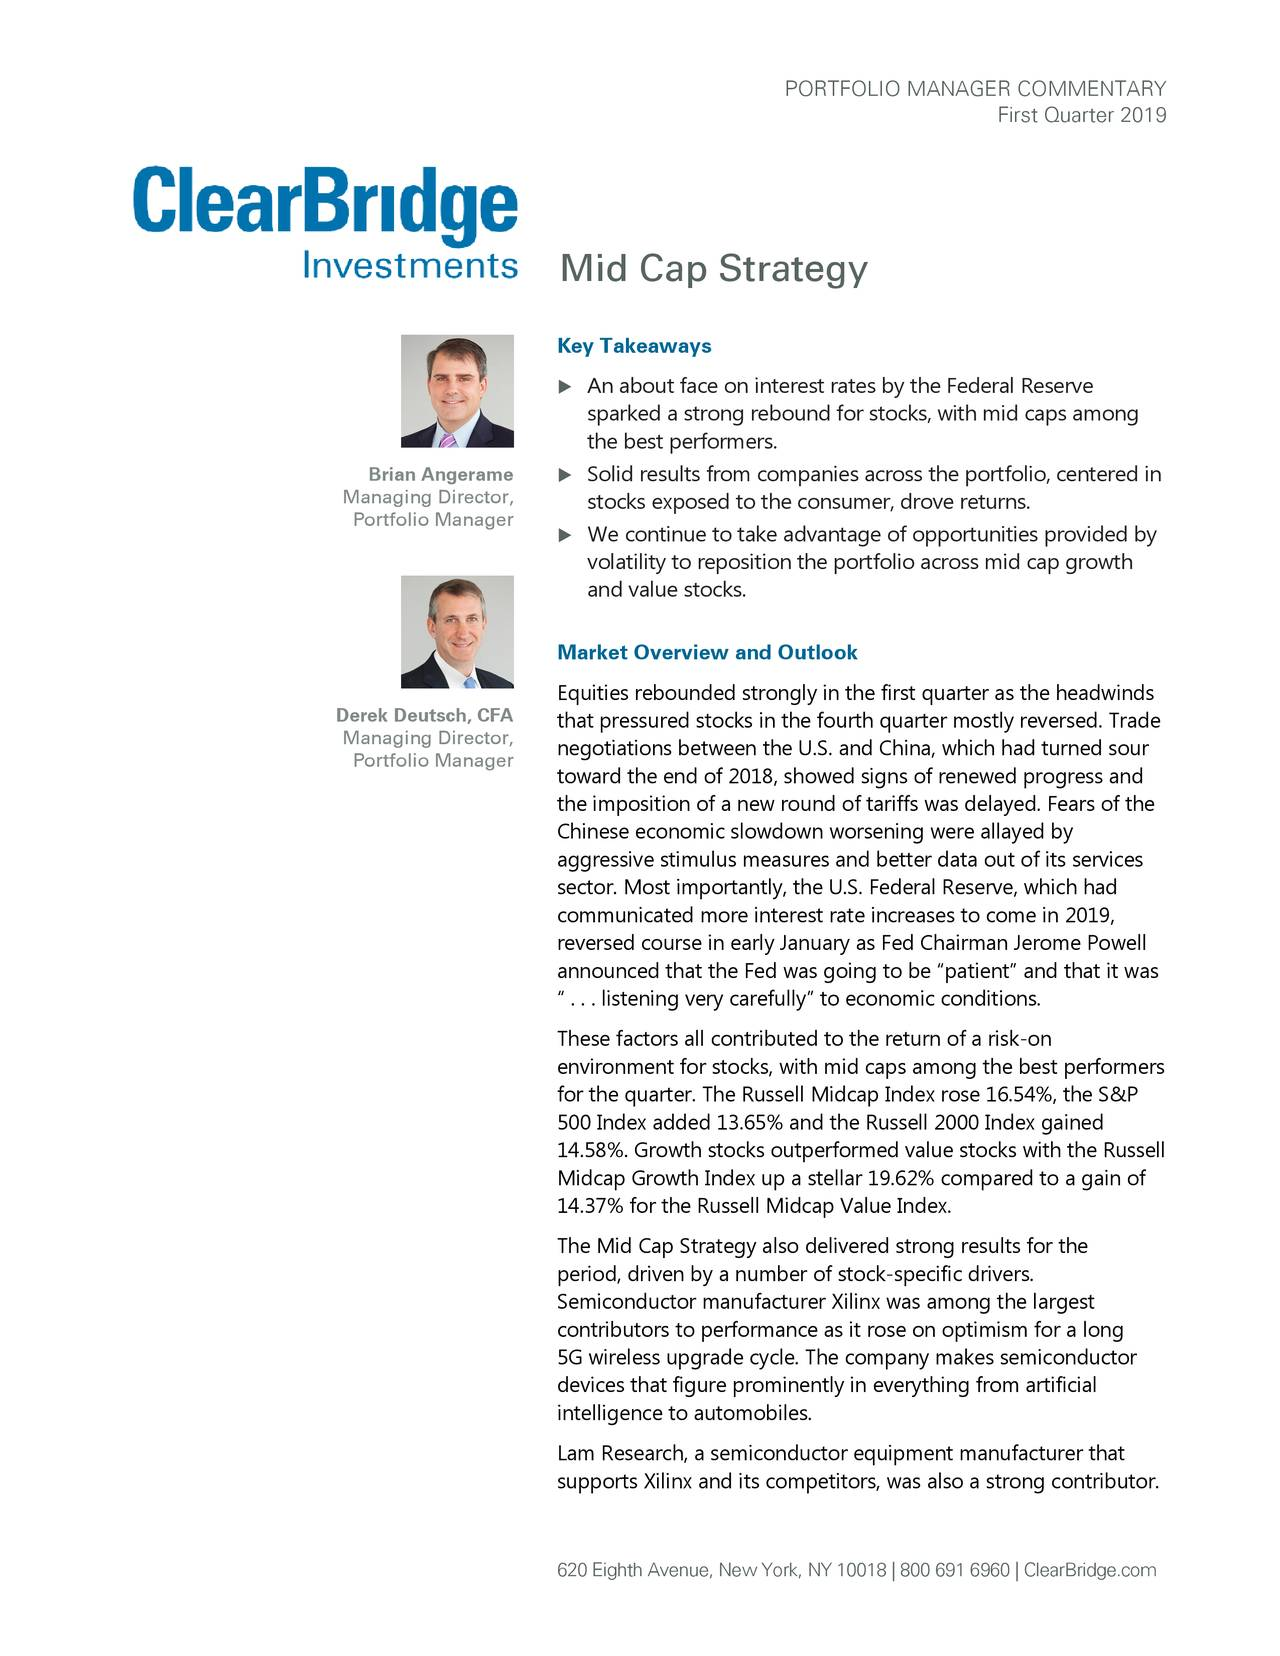 """First Quarter 2019 Mid Cap Strategy Key Takeaways  An about face on interest rates by the Federal Reserve sparked a strong rebound for stocks, with mid caps among the best performers. Brian Angerame  Solid results from companies across the portfolio, centered in Managing Director, stocks exposed to the consumer, drov e returns. Portfolio Manager  We continue to take advantage of opportunities prov ided by volatility to reposition the portfolio across mid cap growth and value stocks. Market Overview and Outlook Equities rebounded strongly in the first quarter as the headwinds Derek Deutsch, CFA that pressured stocks in the fourth quarter mostly reversed. Trade Managing Director, negotiations between the U.S. and China, which had turned sour Portfolio Manager toward the end of 2018, showed signs of renewed progress and the imposition of a new round of tariffs was delayed. Fears of the Chinese economic slowdown worsening were allayed by aggressive stimulus measures and better data out of its services sector. Most importantly, the U.S. Federal Reserve, which had communicated more interest rate increases to come in 2019, reversed course in early January as Fed Chairman Jerome Powell announced that the Fed was going to be """"patient"""" and that it was """" . . . listening very carefully"""" to economic conditions. These factors all contributed to the return of a risk-on environment for stocks, with mid caps among the best performers for the quarter. The Russell Midcap Index rose 16.54%, the S&P 500 Index added 13.65% and the Russell 2000 Index gained 14.58%. Growth stocks outperformed value stocks with the Russell Midcap Growth Index up a stellar 19.62% compared to a gain of 14.37% for the Russell Midcap Value Index. The Mid Cap Strategy also delivered strong results for the period, driven by a number of stock-specific drivers. Semiconductor manufacturer Xilinx was among the largest contributors to performance as it rose on optimism for a long 5G wireless upgrade cycle. The company"""